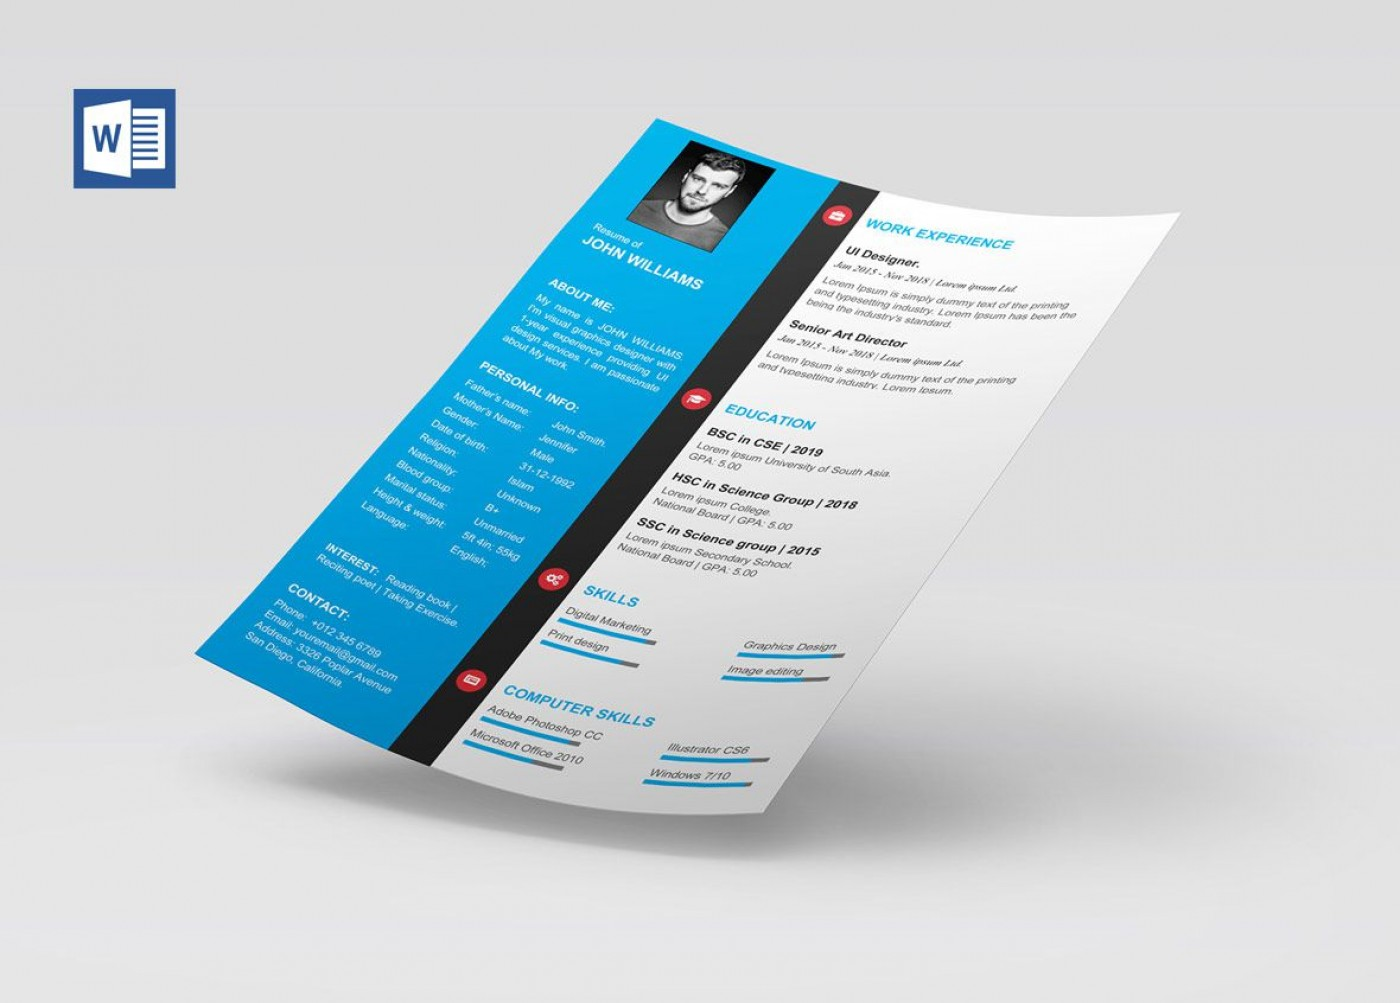 011 Formidable Word Template Free Download Image  Simple Cv 20191400